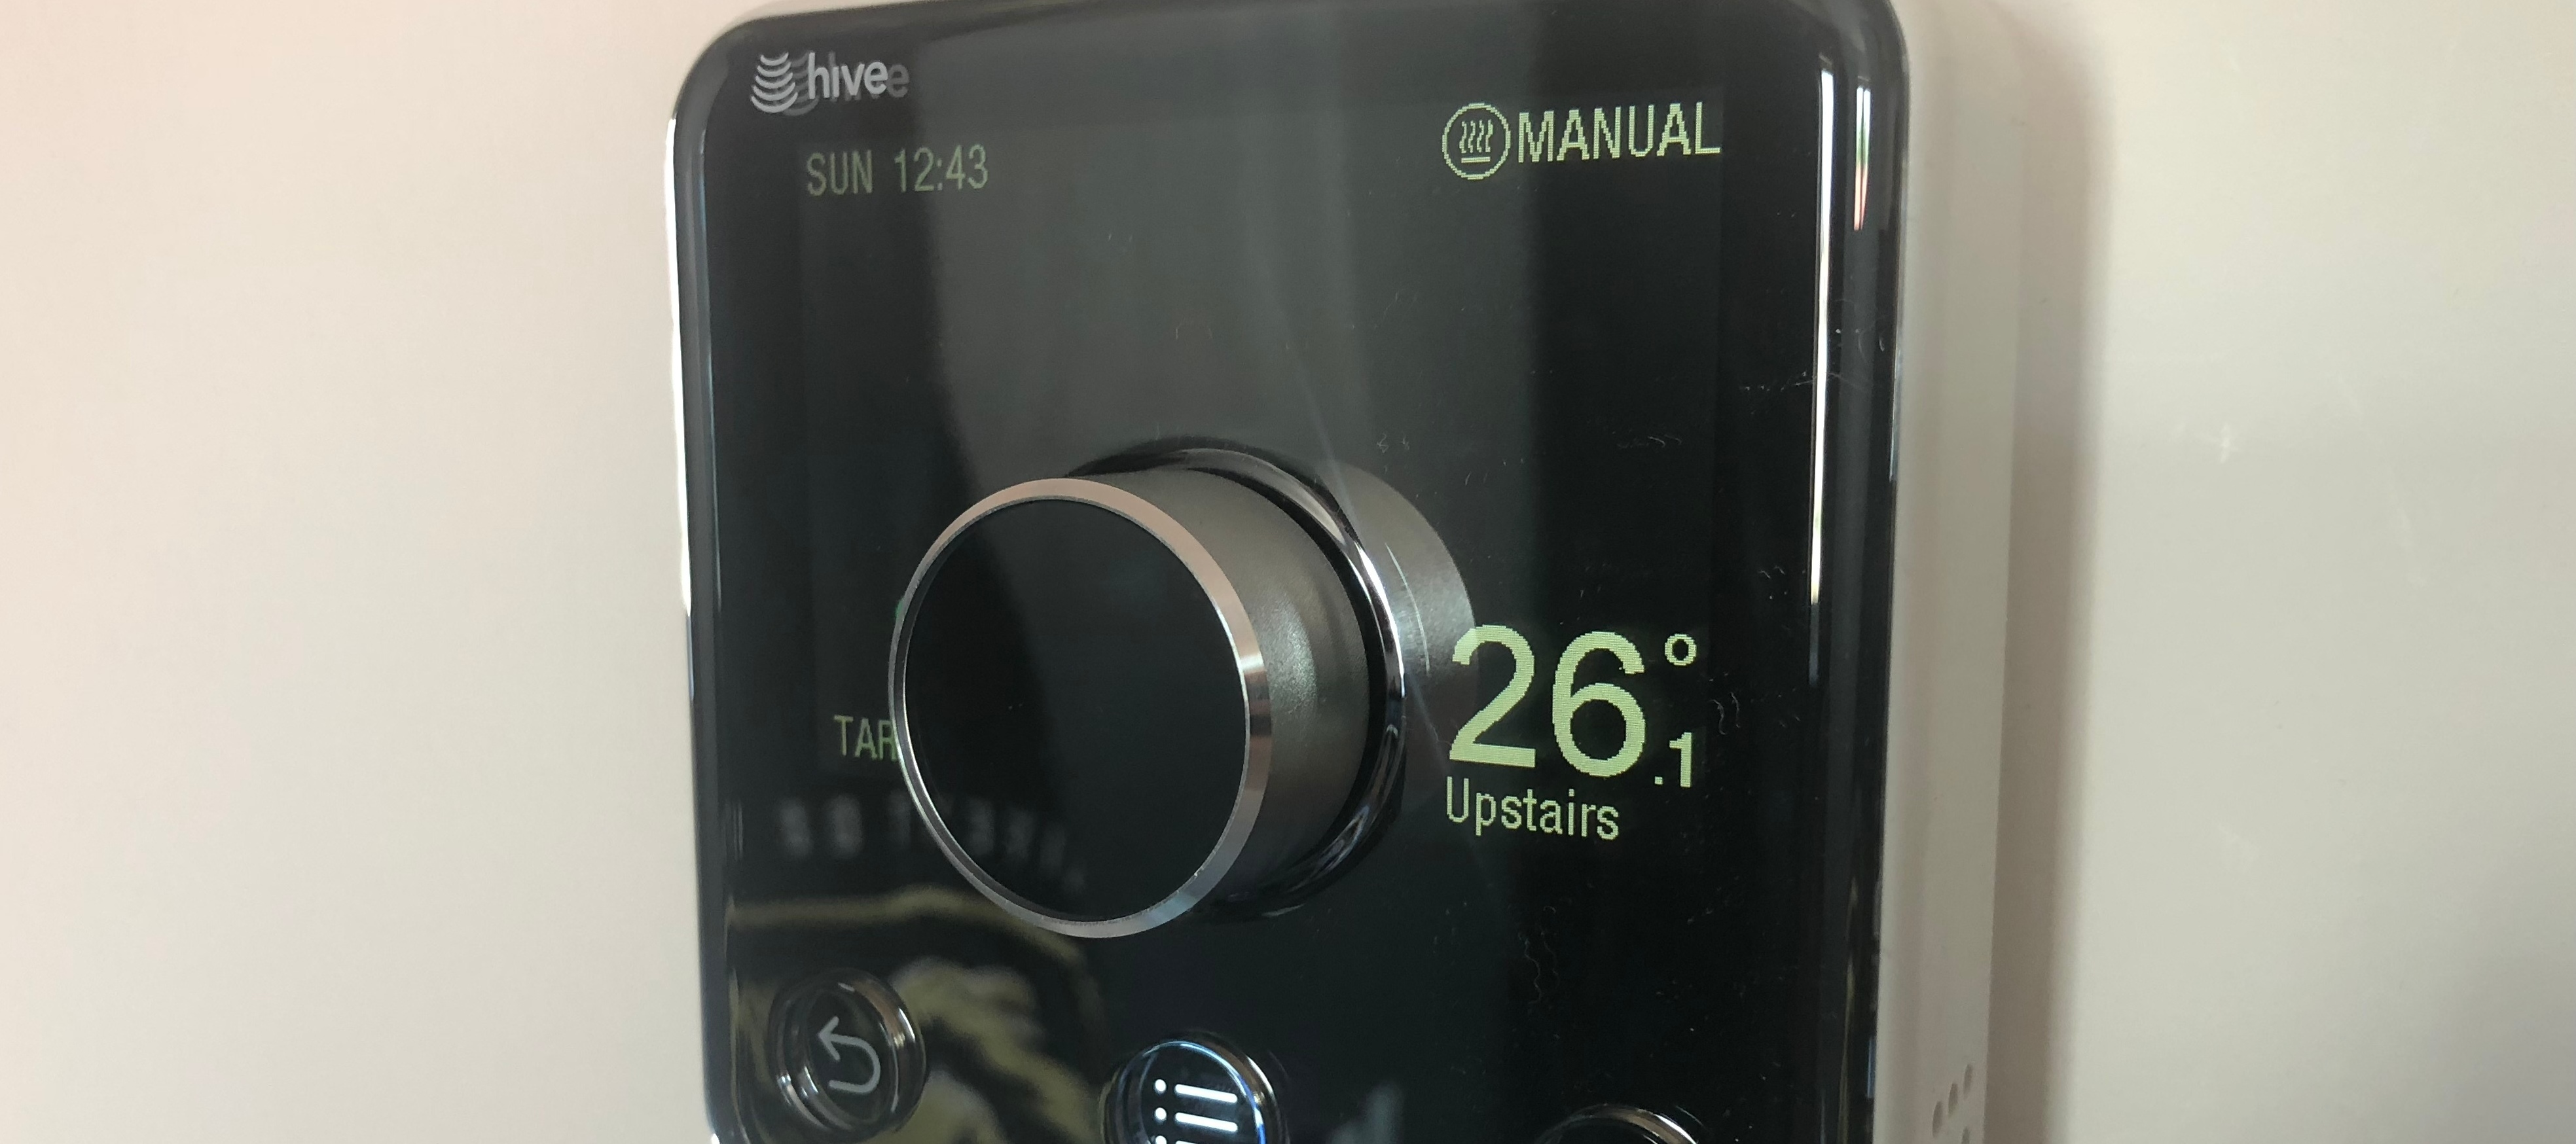 Living with a Smart thermostat - Hive